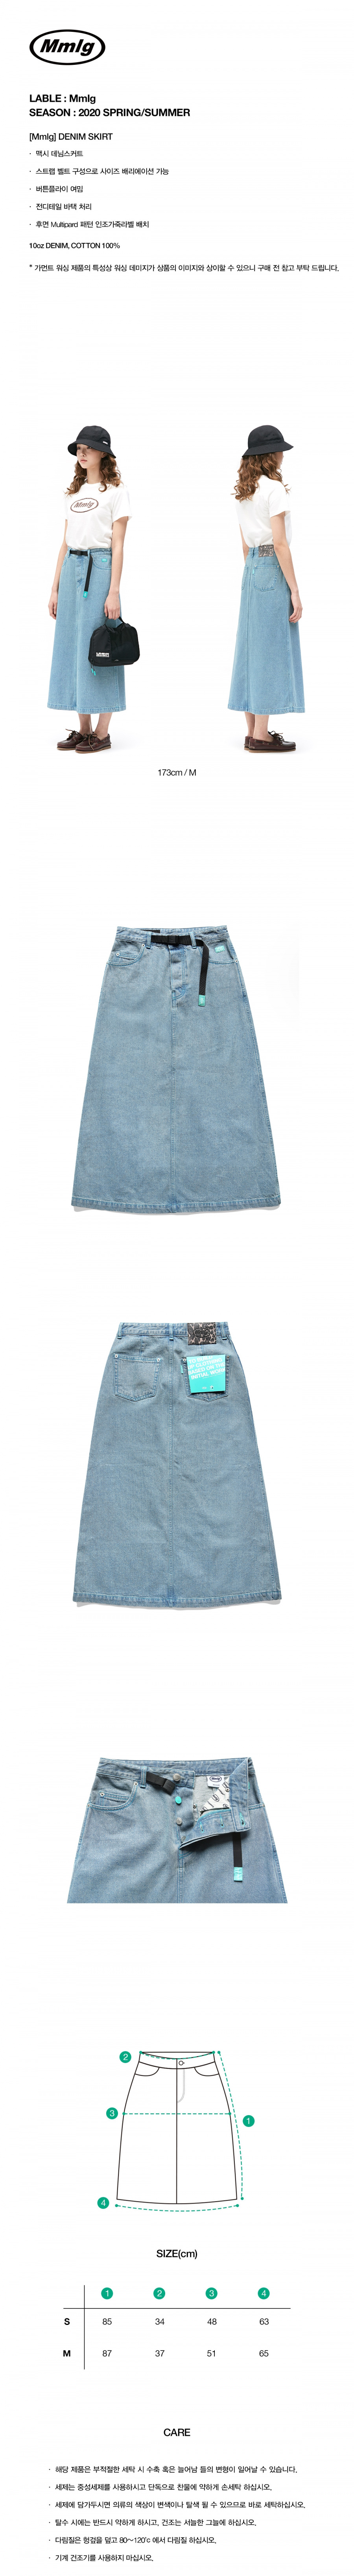 엠엠엘지(MMLG) [Mmlg] DENIM SKIRT (WASHED BLUE)